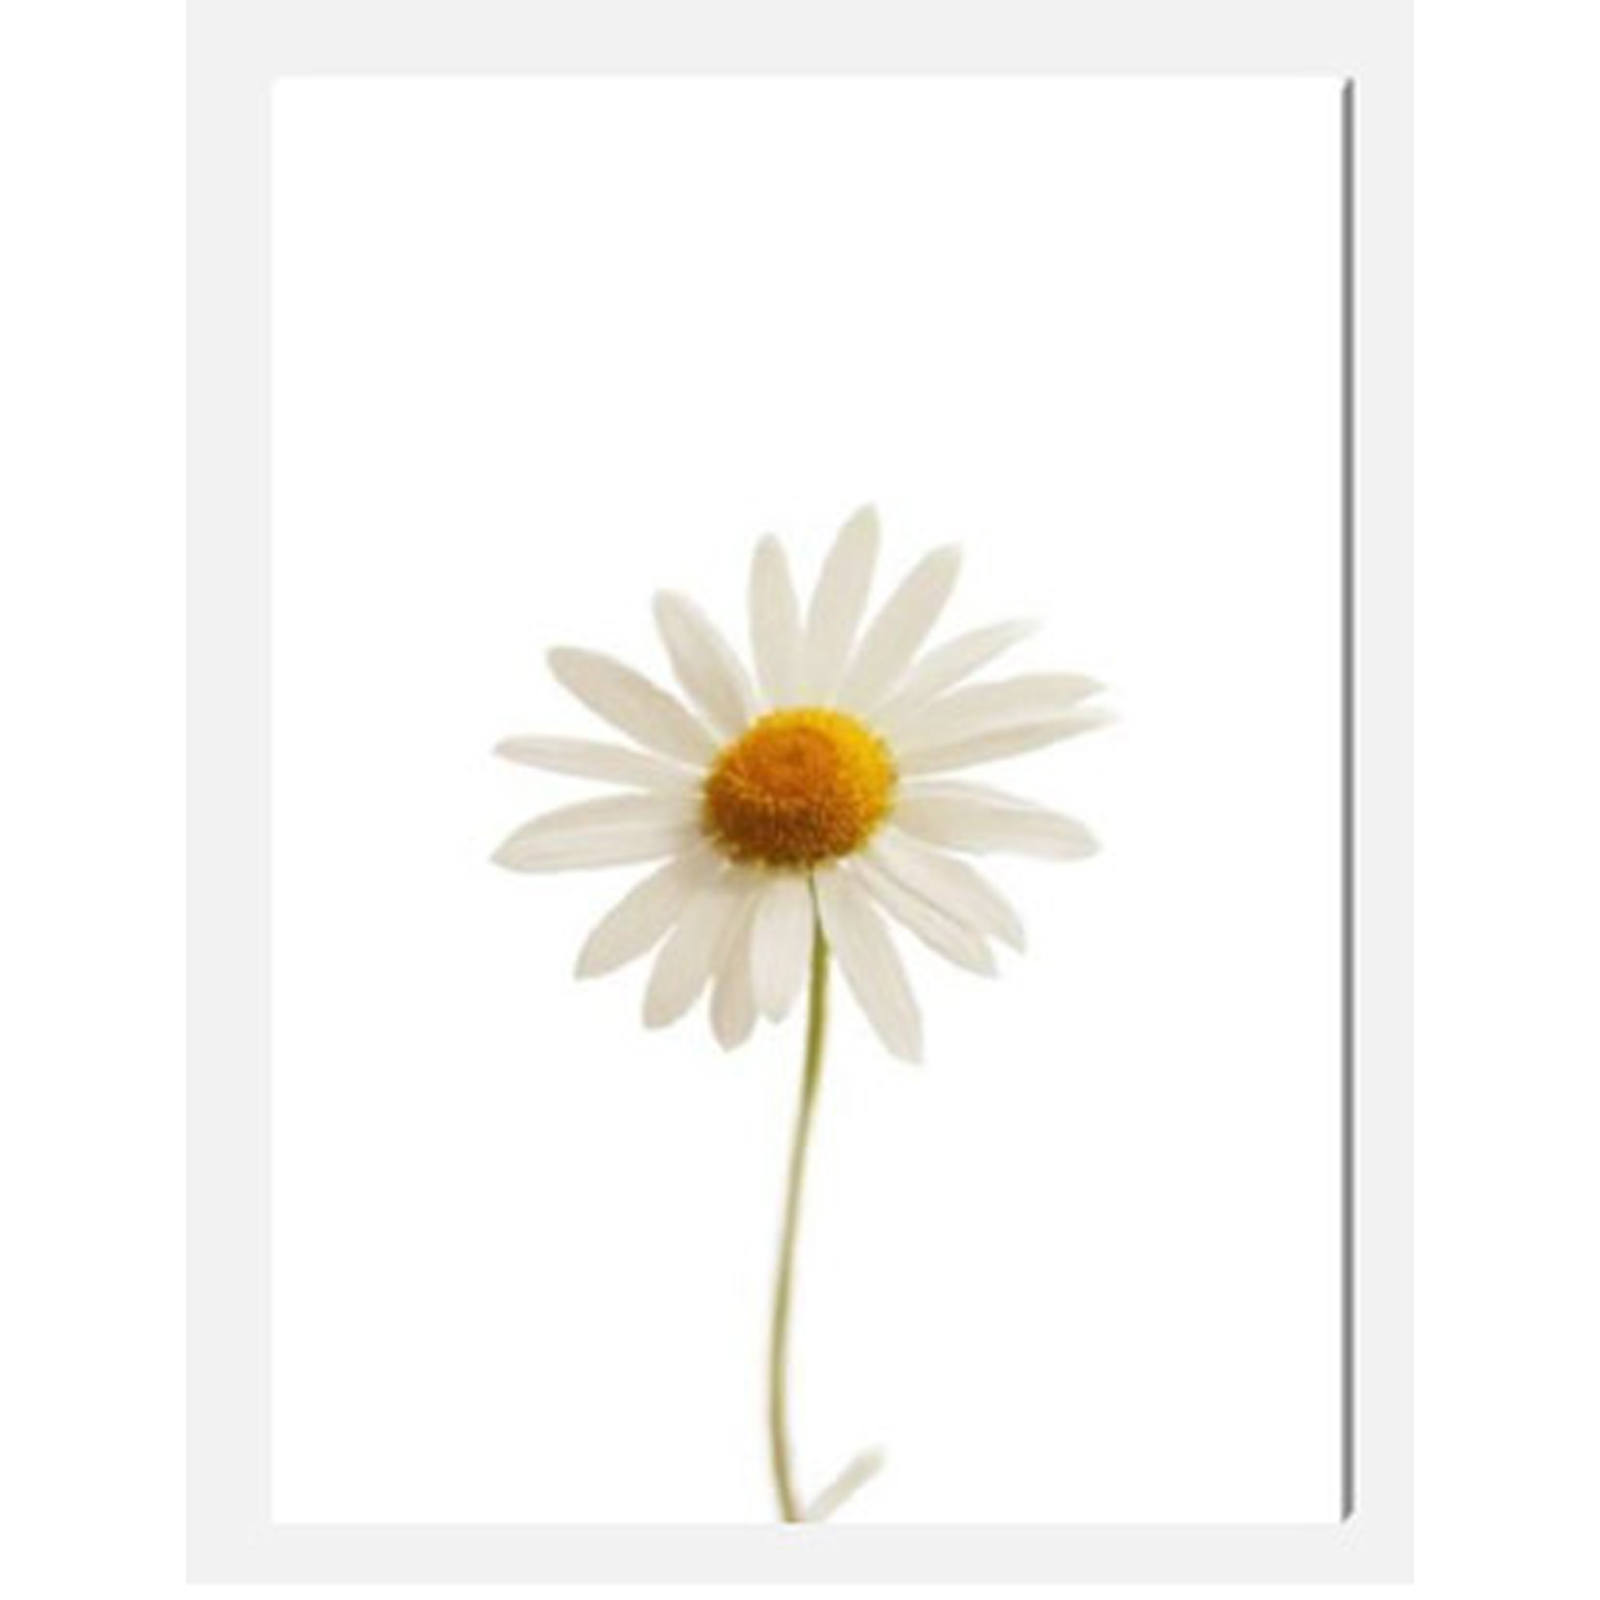 Daisy Stretched Canvas by Celia Henderson LRPS